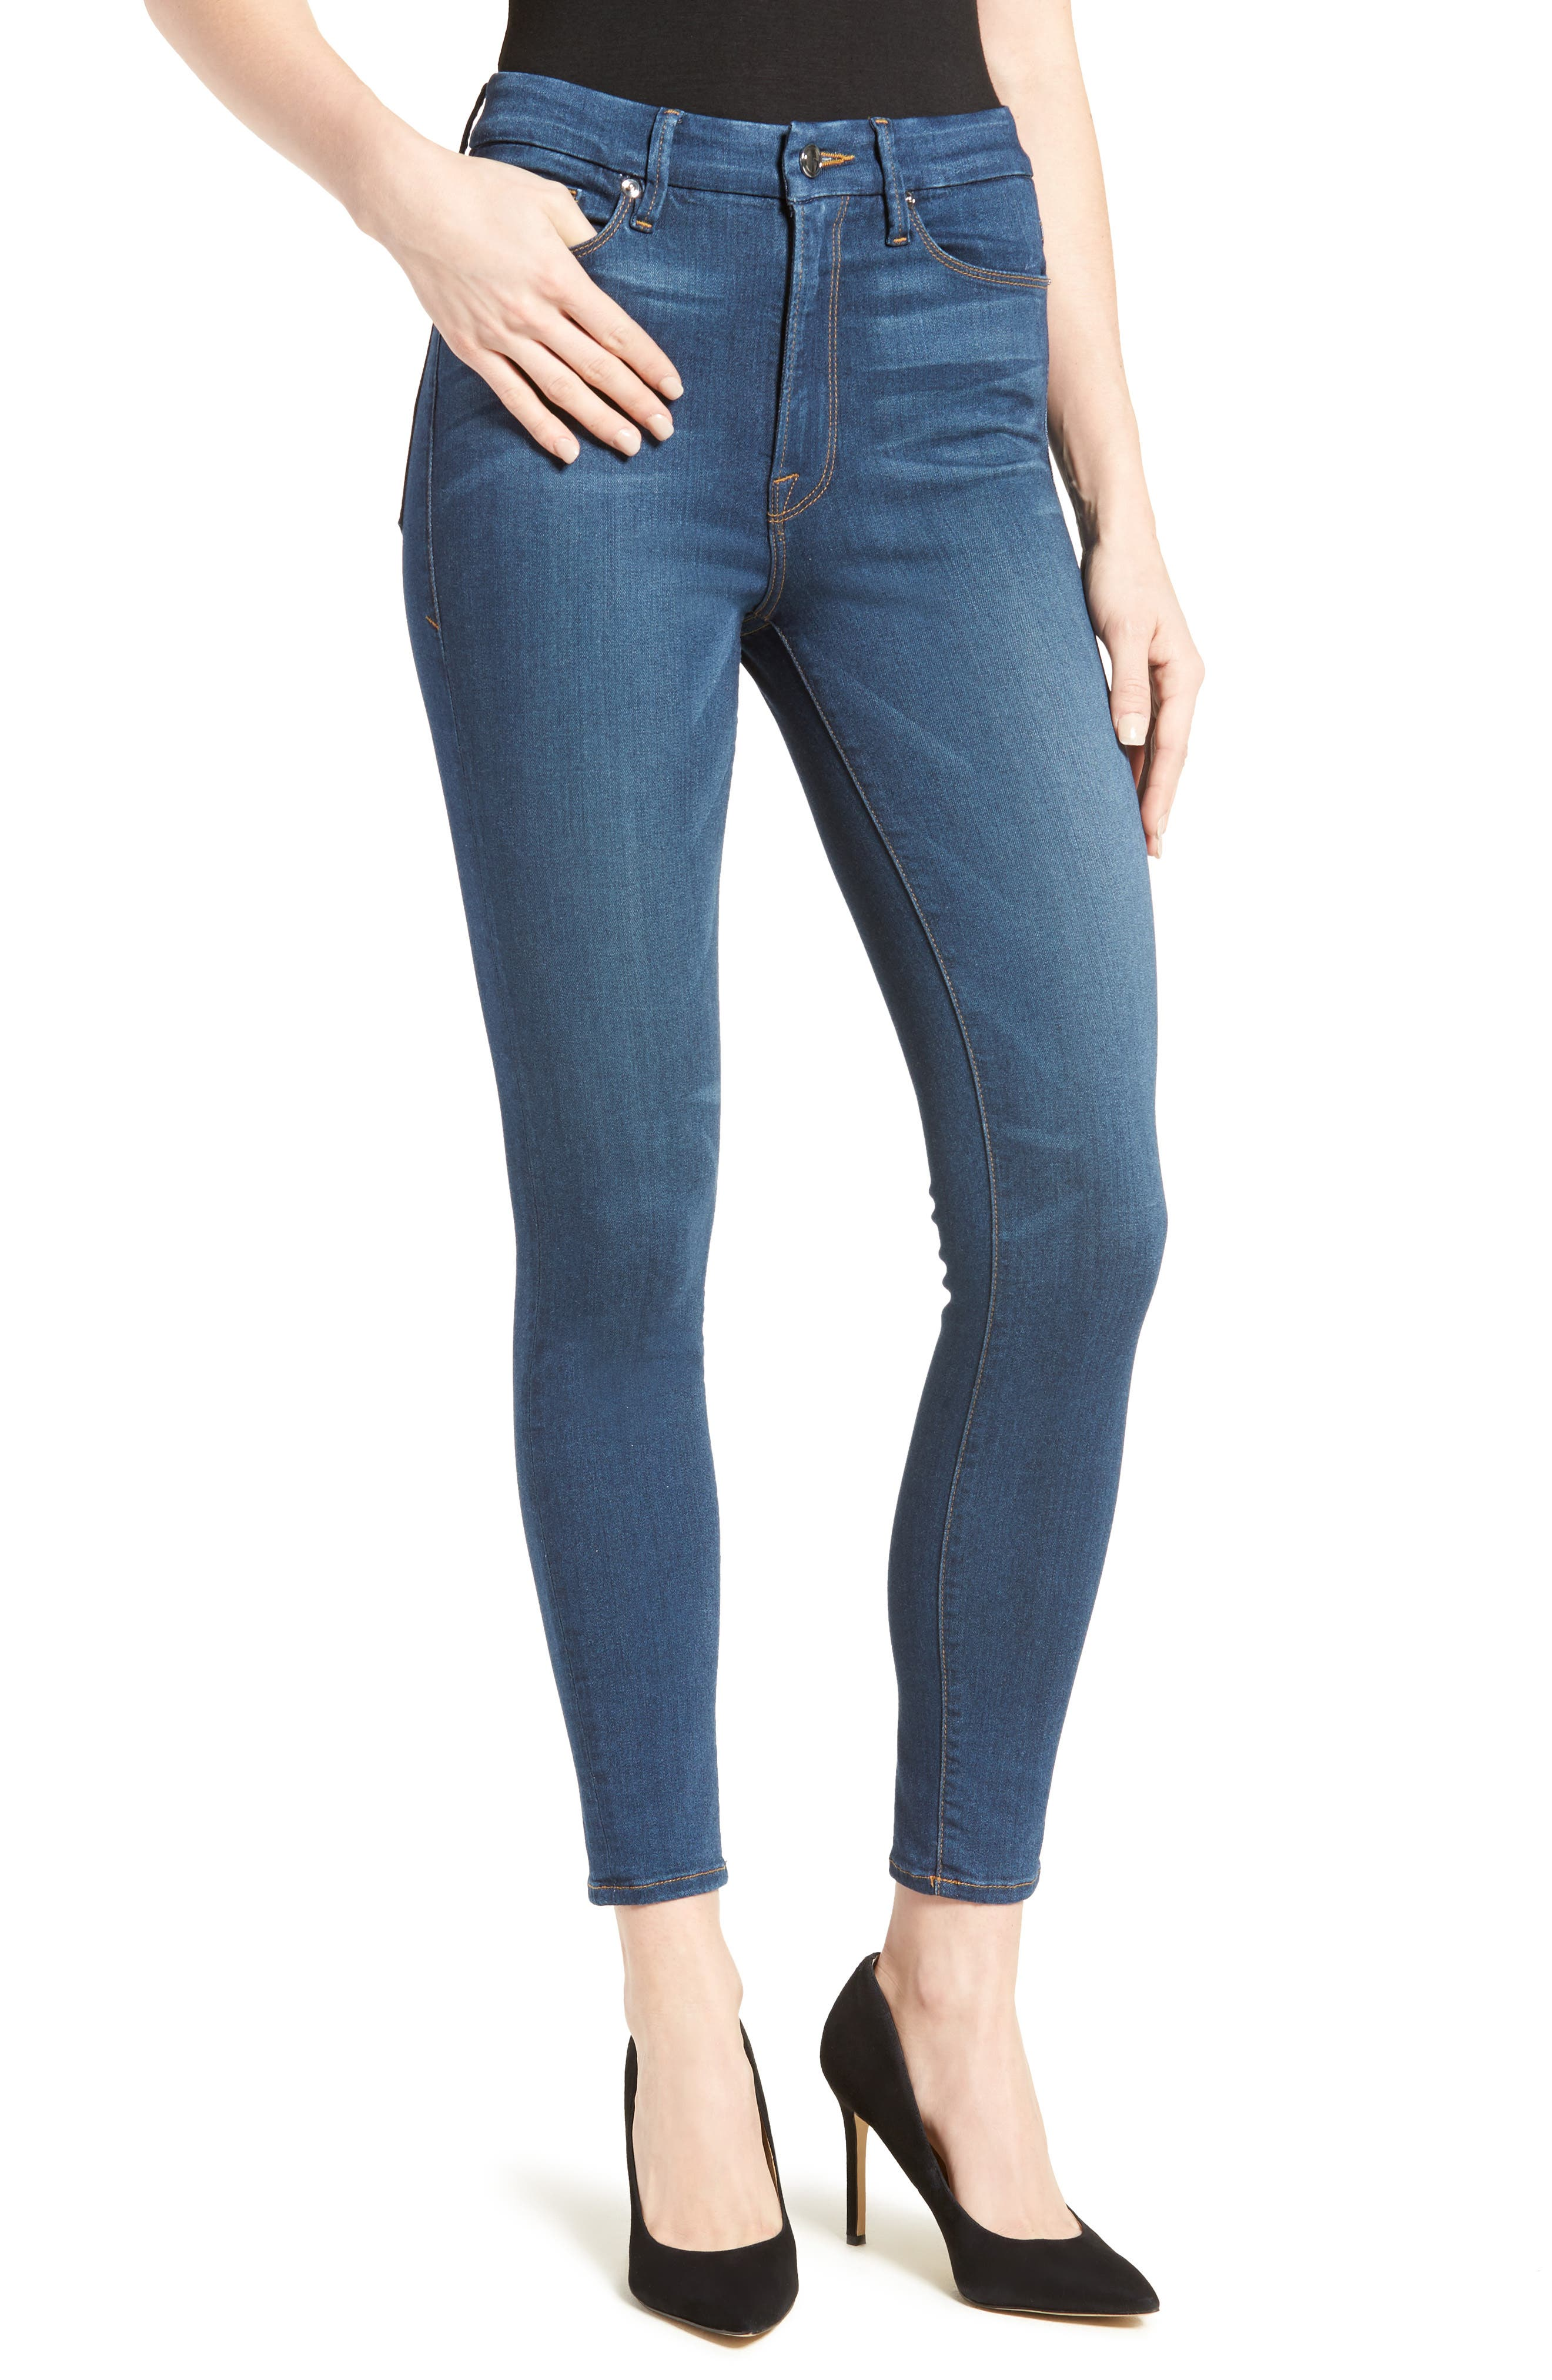 Main Image - Good American Good Waist High Rise Skinny Jeans (Blue 013) (Regular & Plus Size)